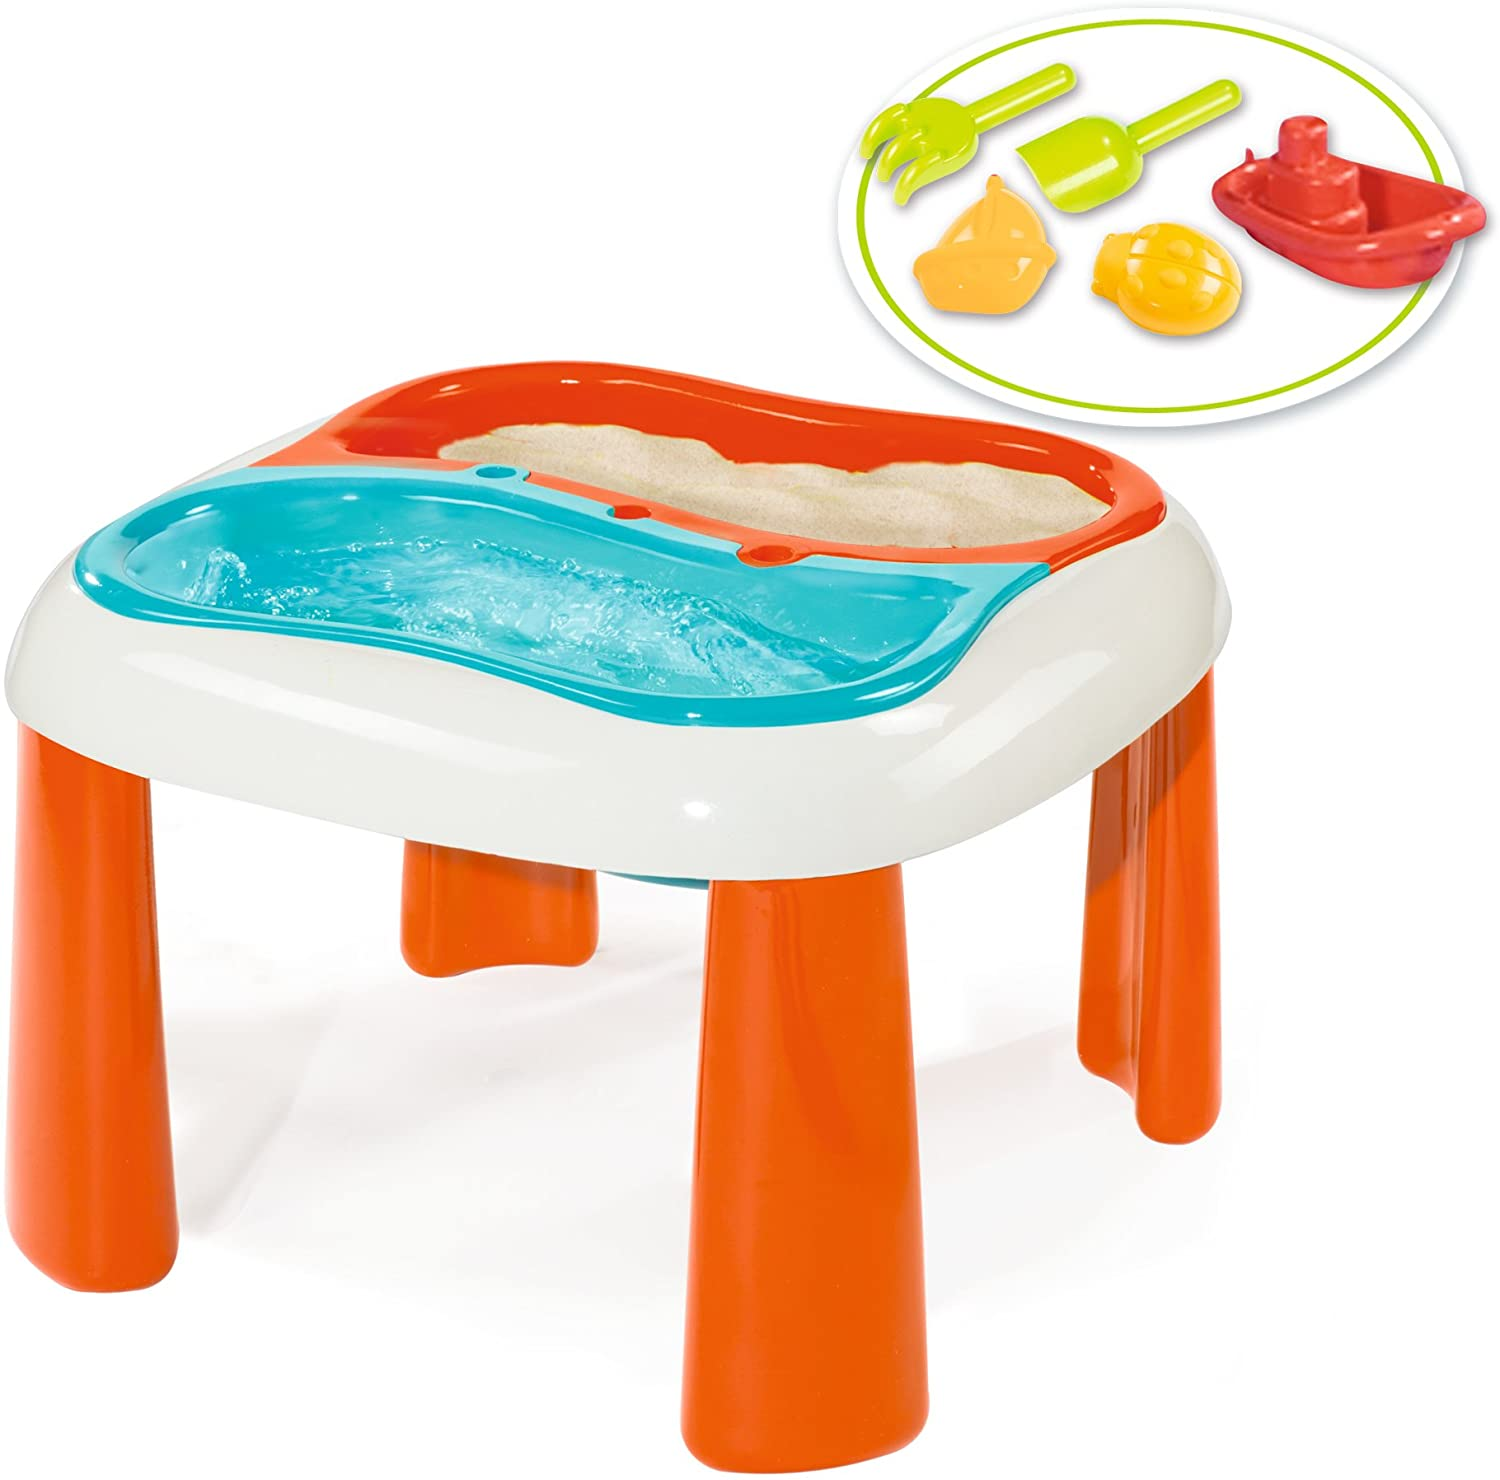 Smoby 840107 Sand and Water Table